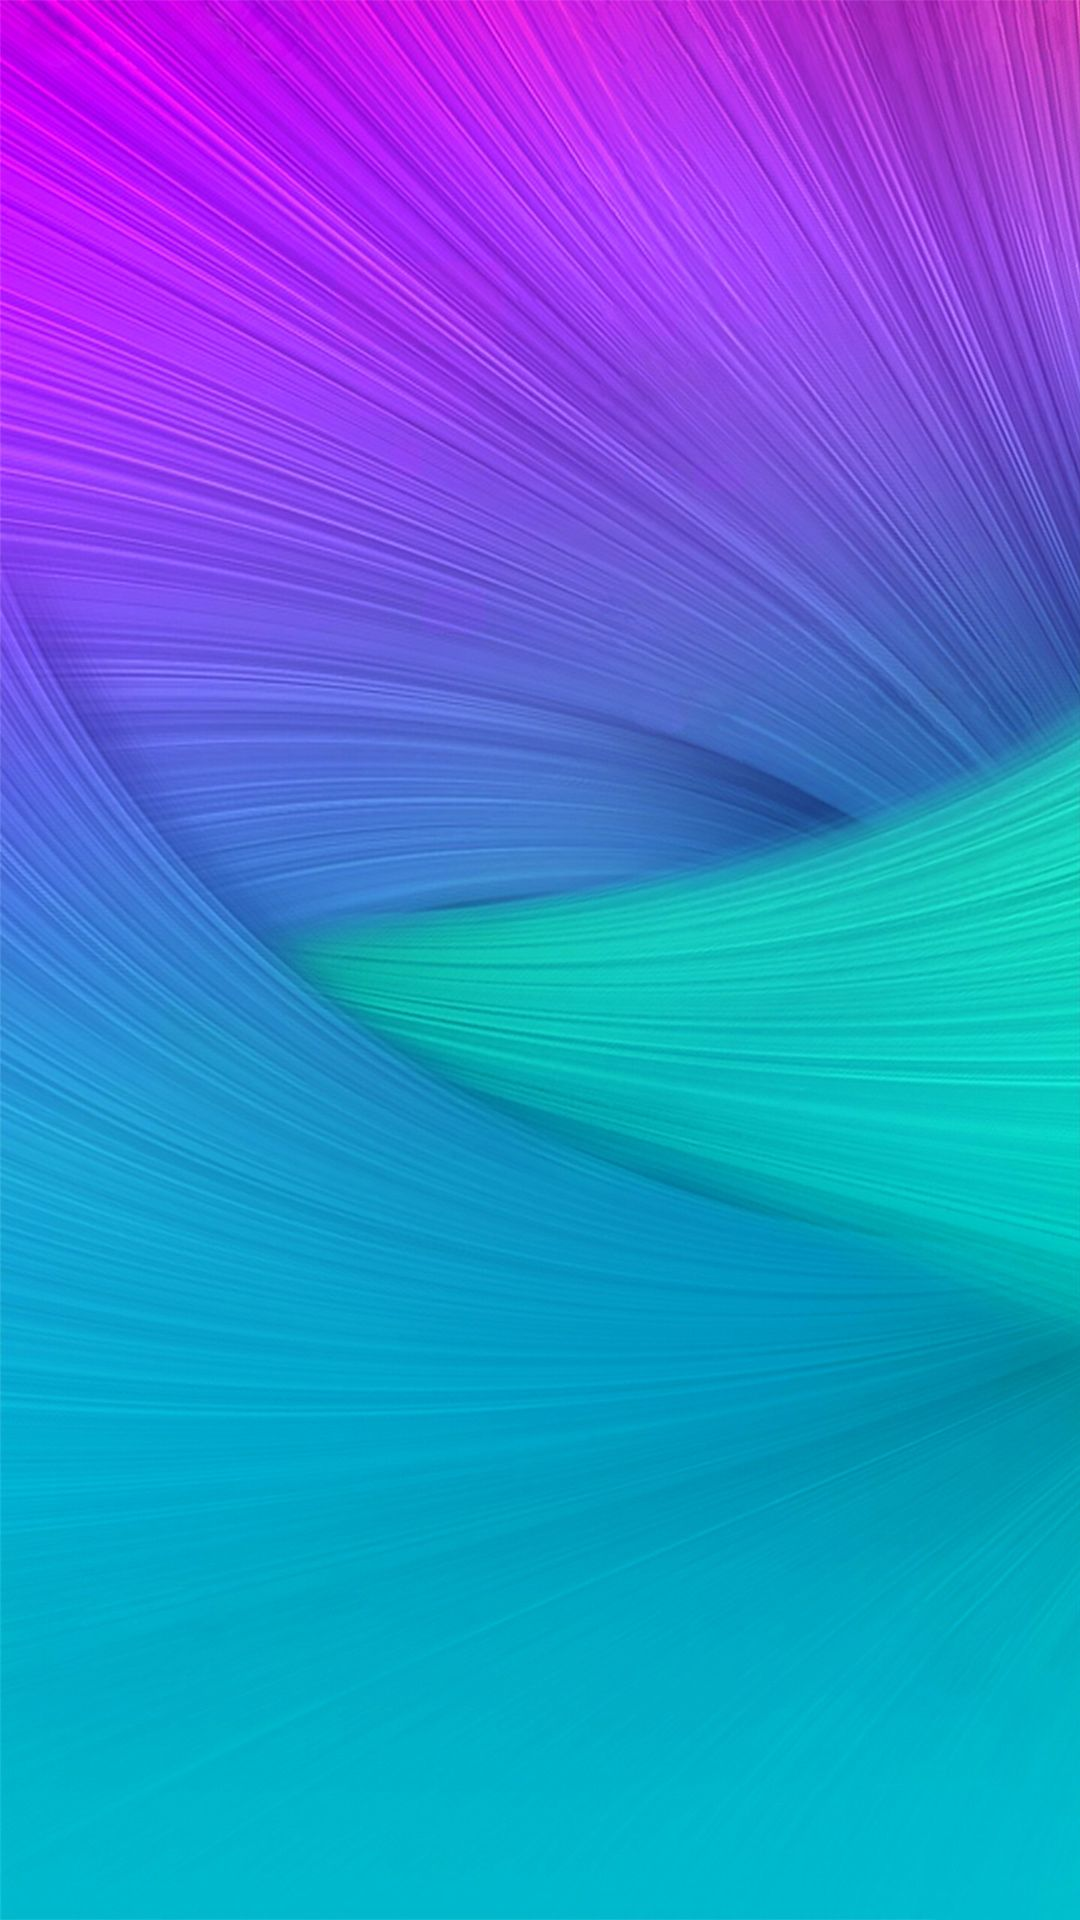 Purple waves abstract k wallpaper free k wallpaper govies purple waves abstract k wallpaper free k wallpaper govies voltagebd Images